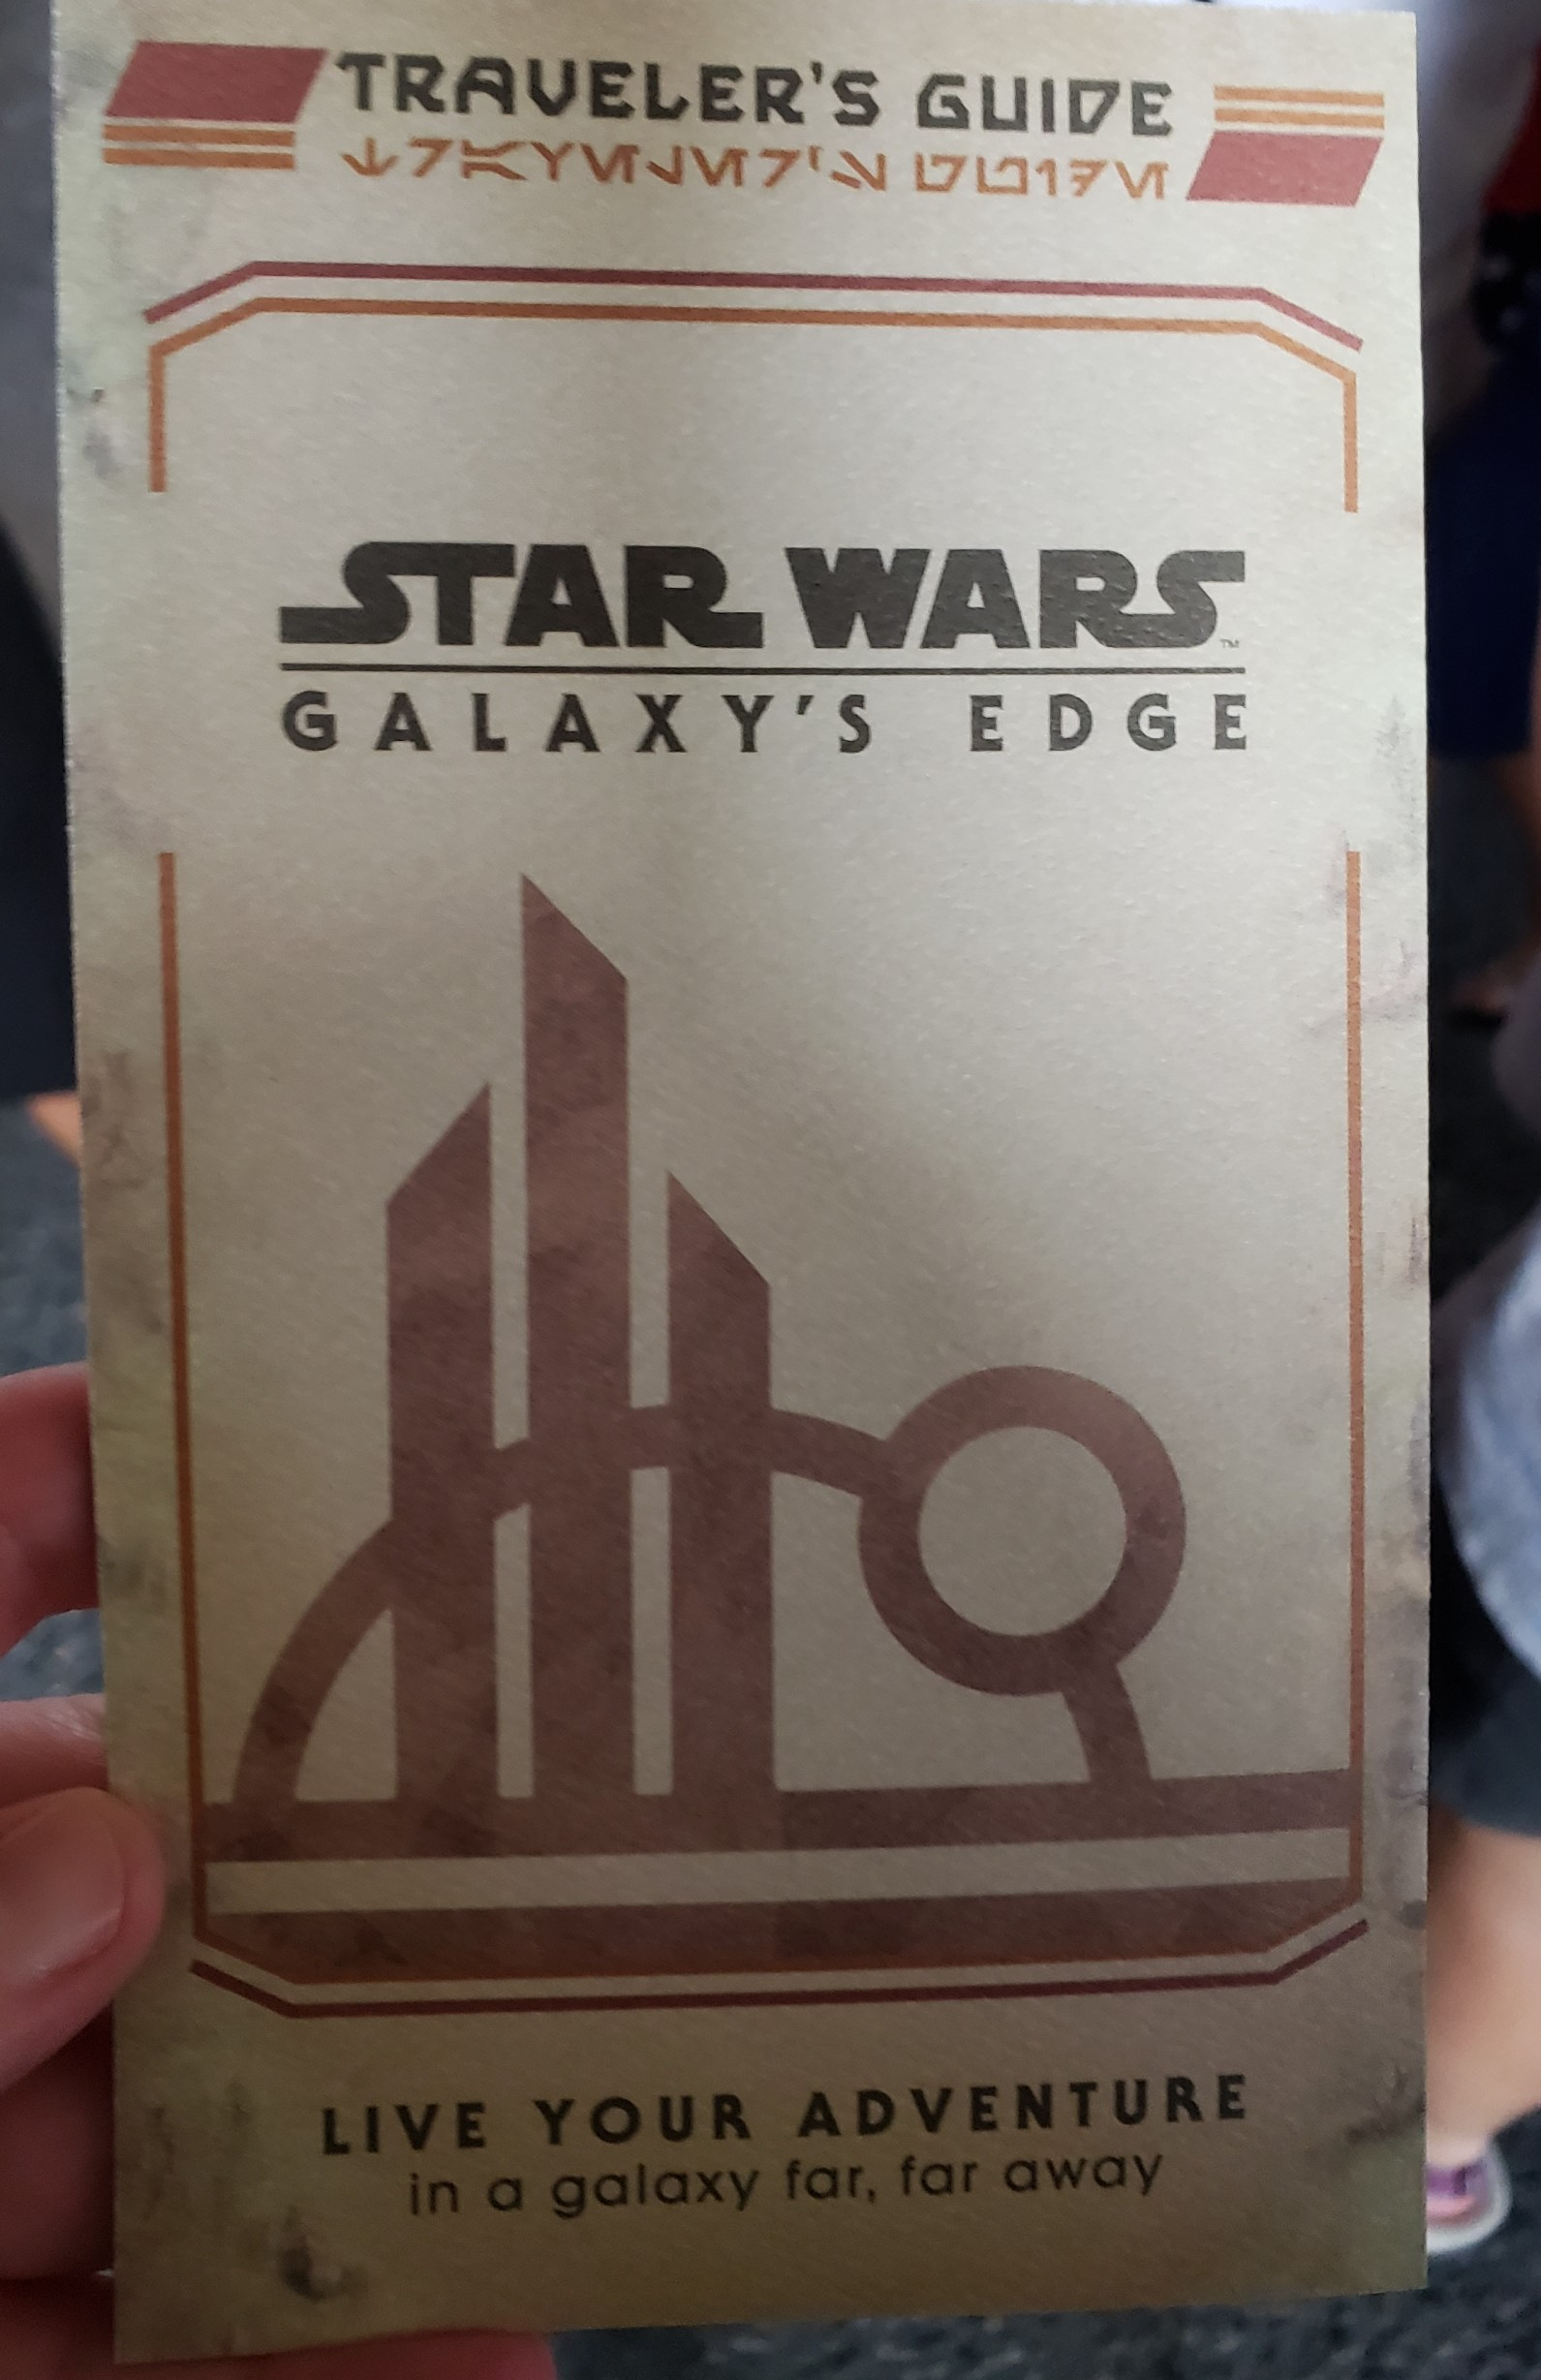 Star Wars: Galaxy's Edge Traveler's Guide